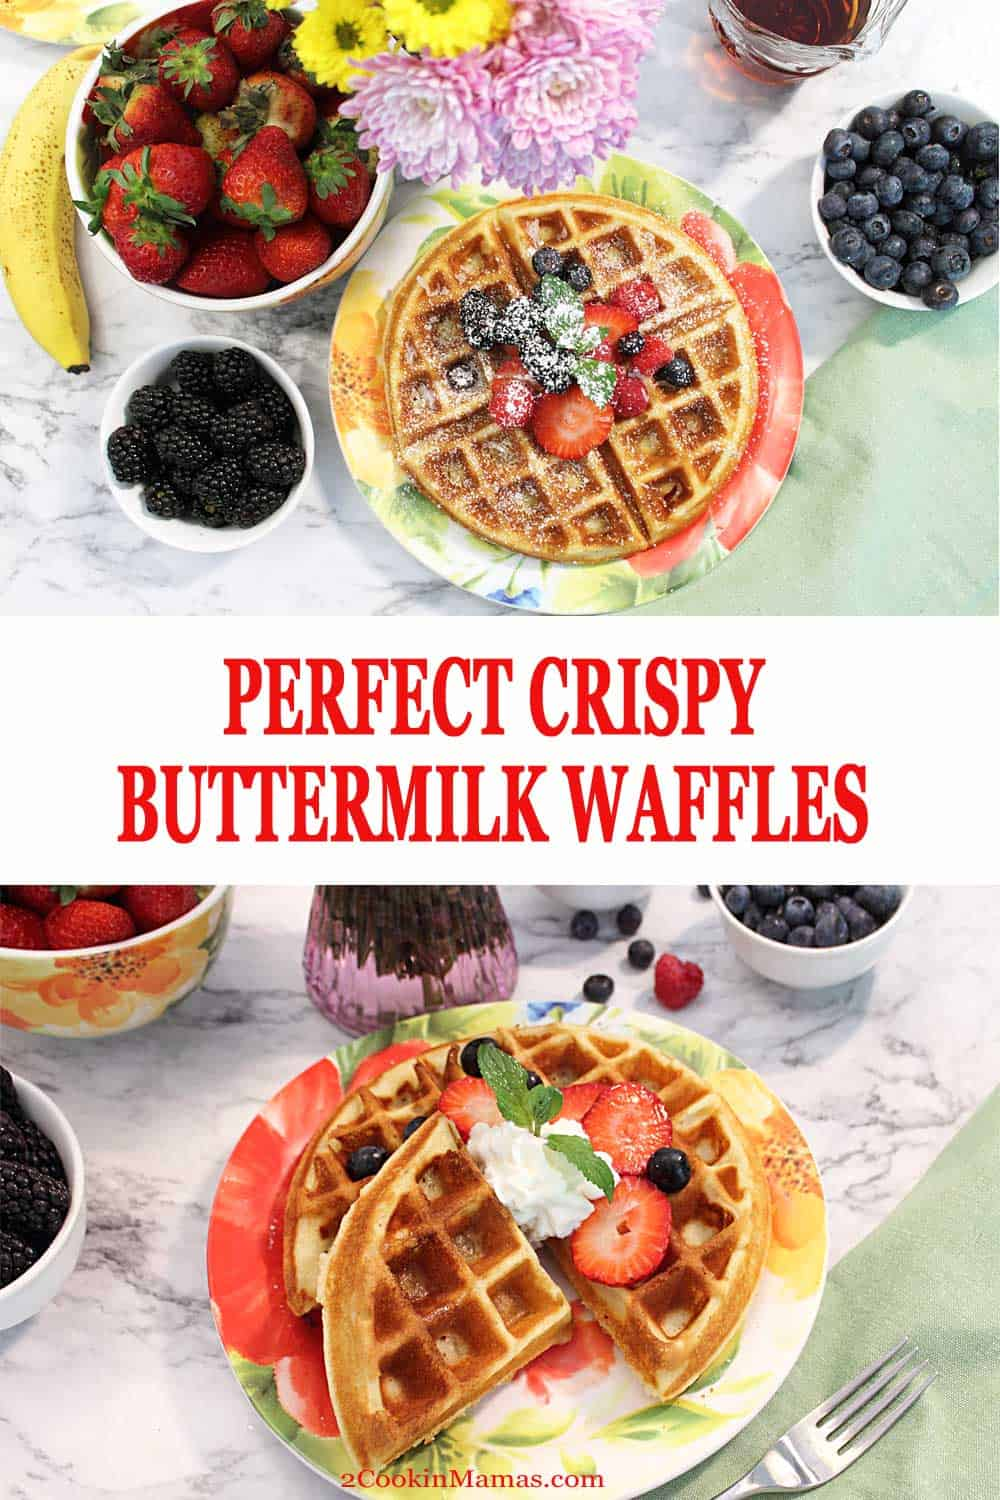 Crispy Buttermilk Waffles 2 | 2 Cookin Mamas Find out the secret ingredient and trick that makes these waffles the best you've ever had! The perfect waffles - crunchy on the outside, soft on the inside and super delicious! Great for weekend mornings and special enough for Mother's Day and Father's Day. #waffles #breakfast #recipe #easy #buttermilk #mothersday #fathersday #brunch